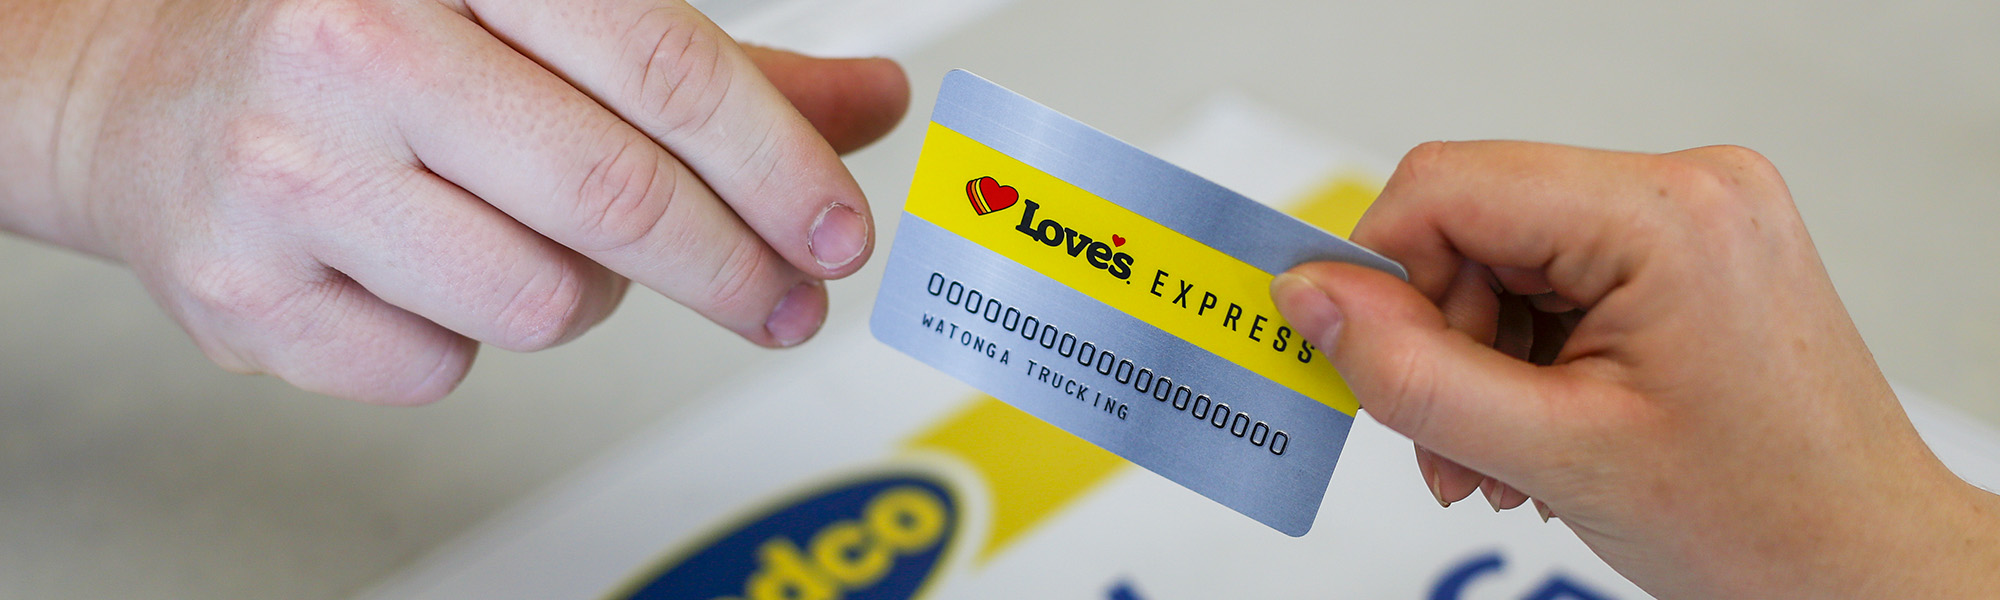 Love's Express Credit